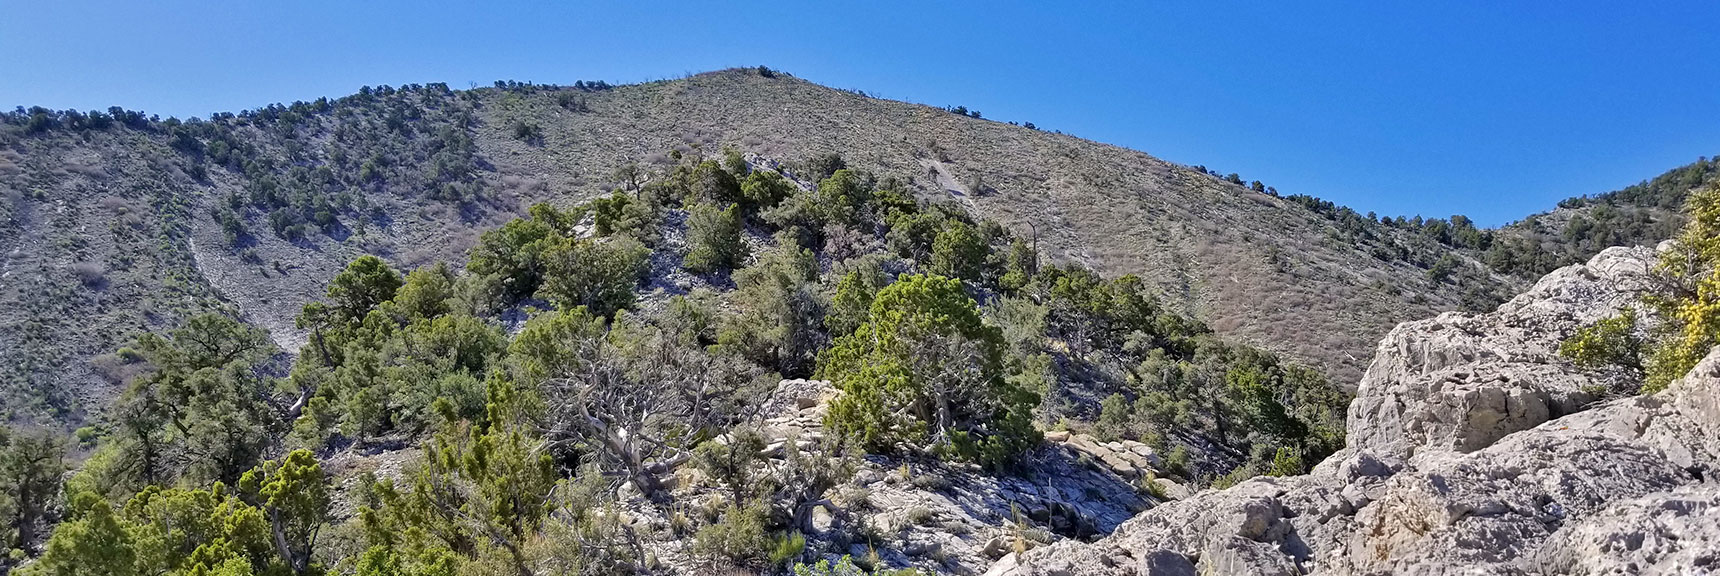 View of Approach Ridge and Summit to the West of El Padre Mountain, La Madre Mountains Wilderness, Nevada